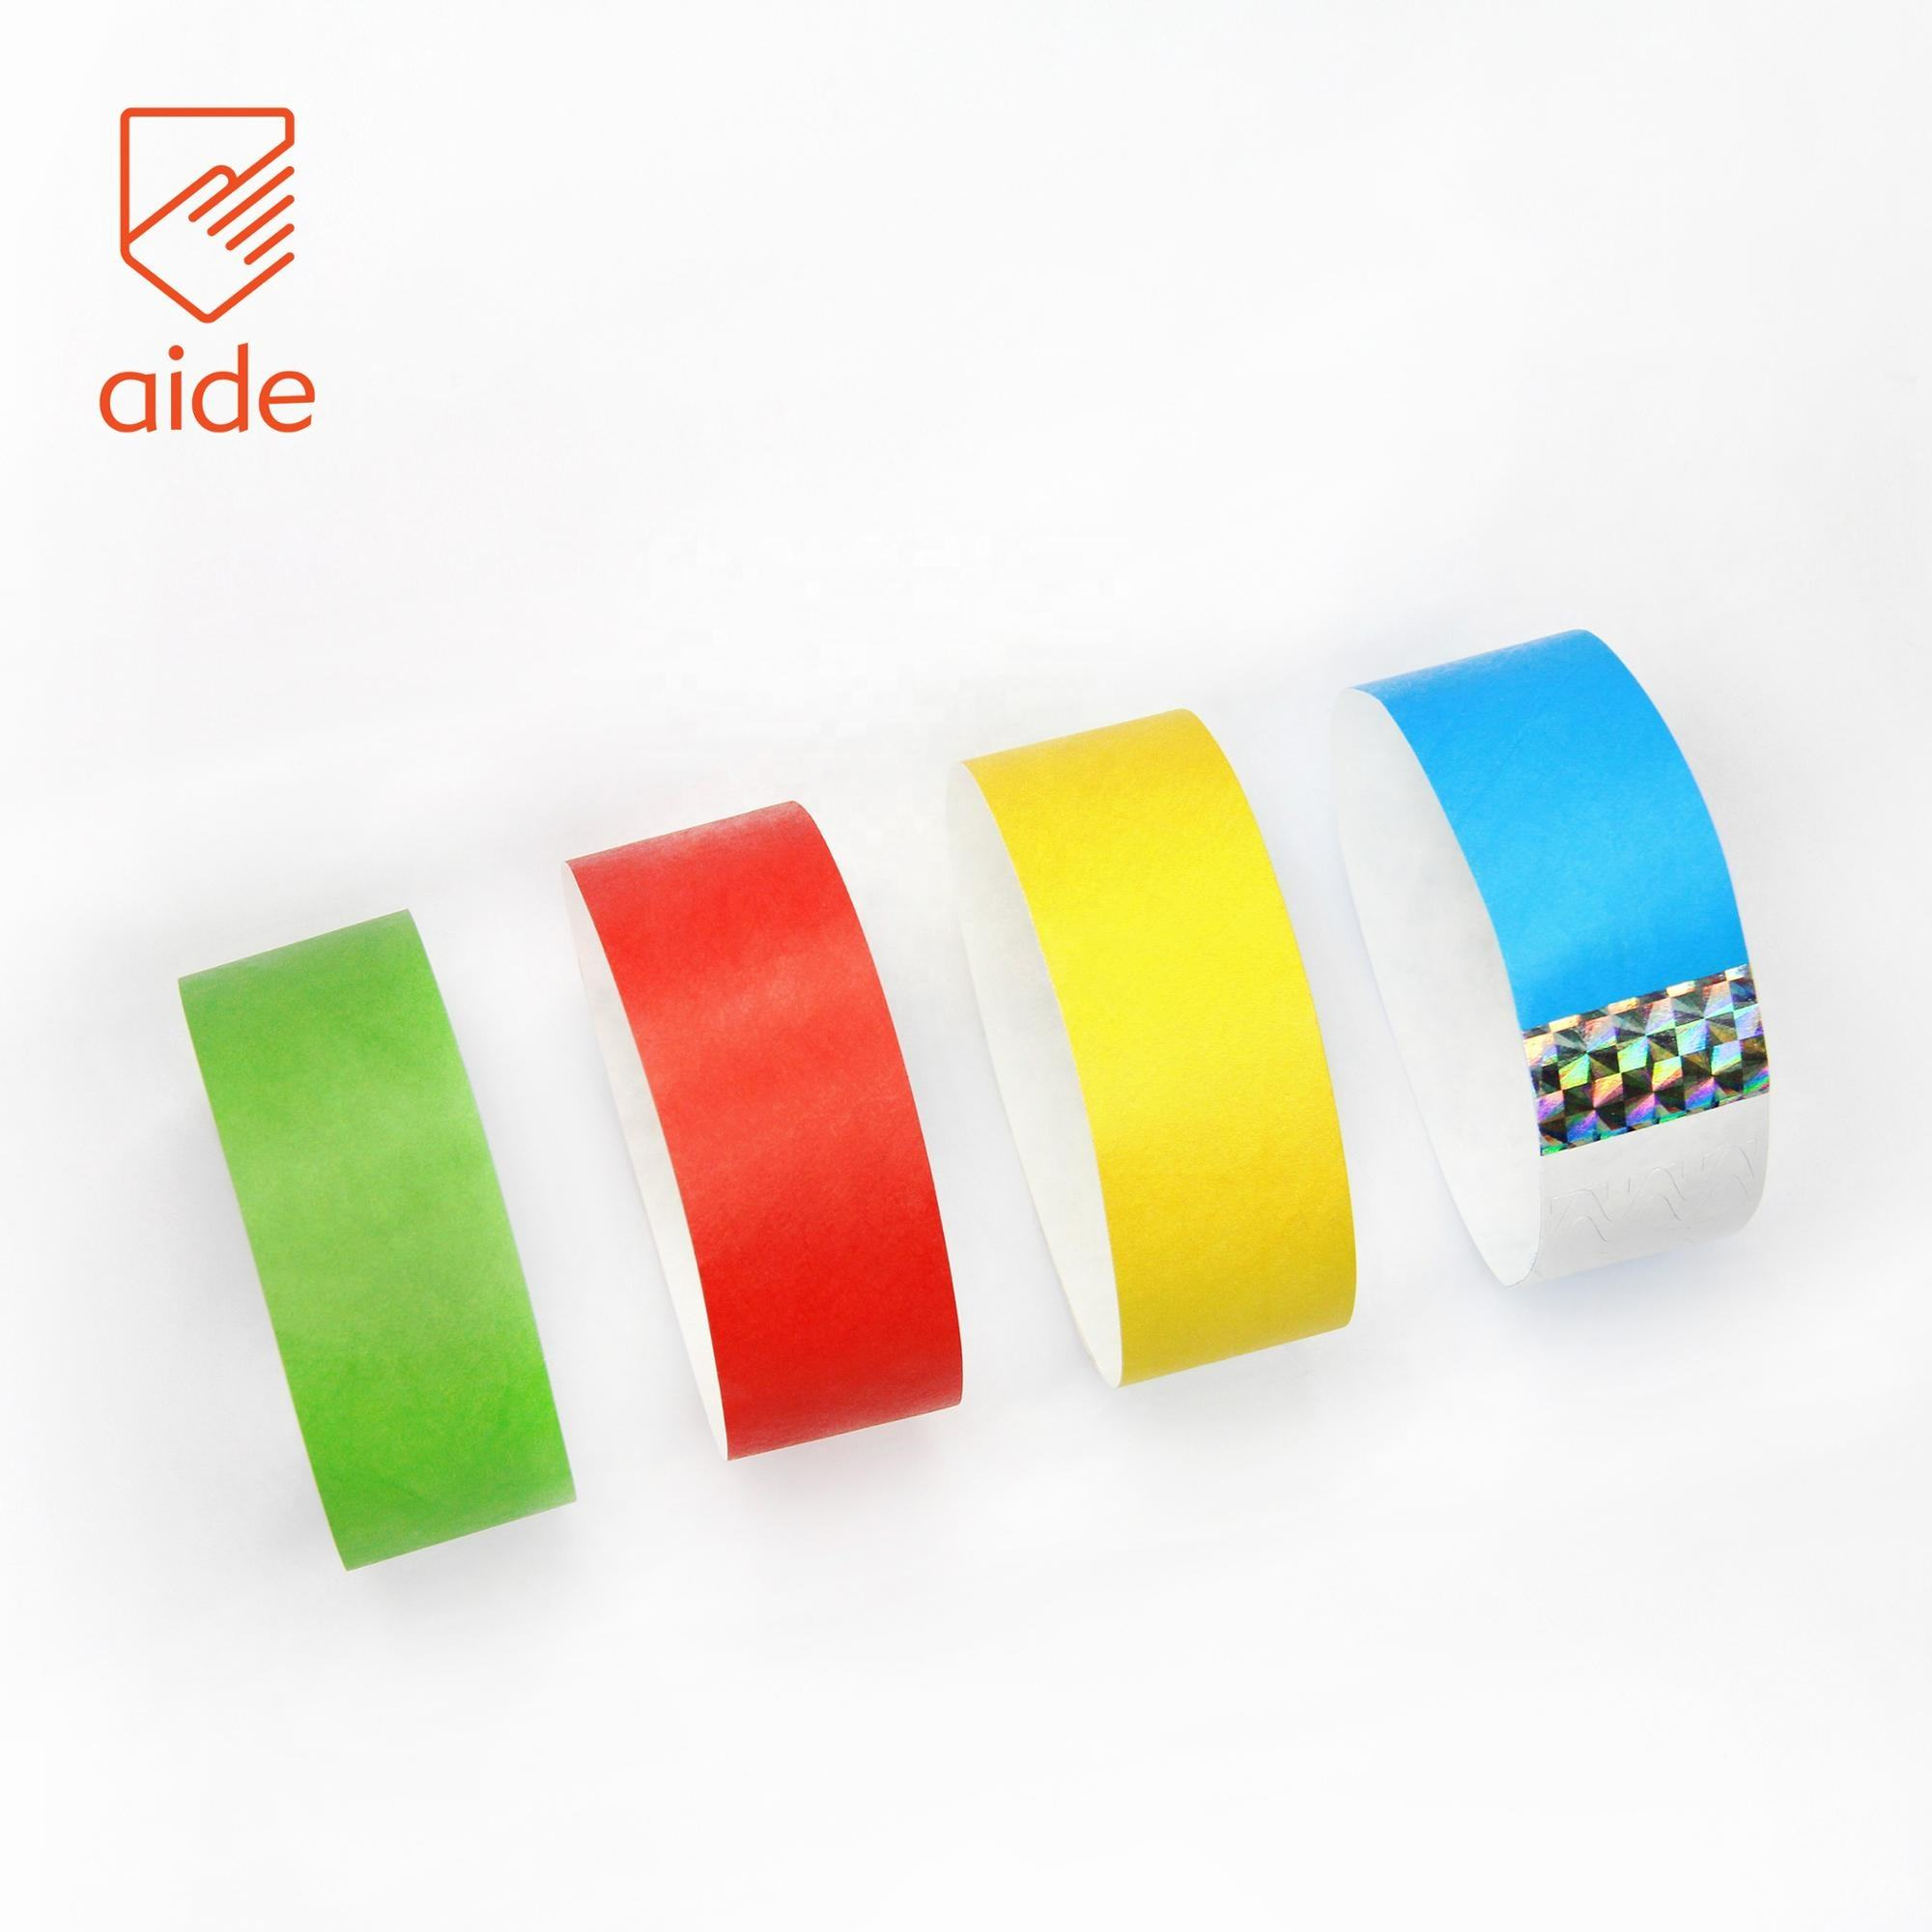 Event Paper Wristbands Water Proof Disposable Gliding Tyvek Printable Paper Tickets Wristbands ID Bracelets For Events